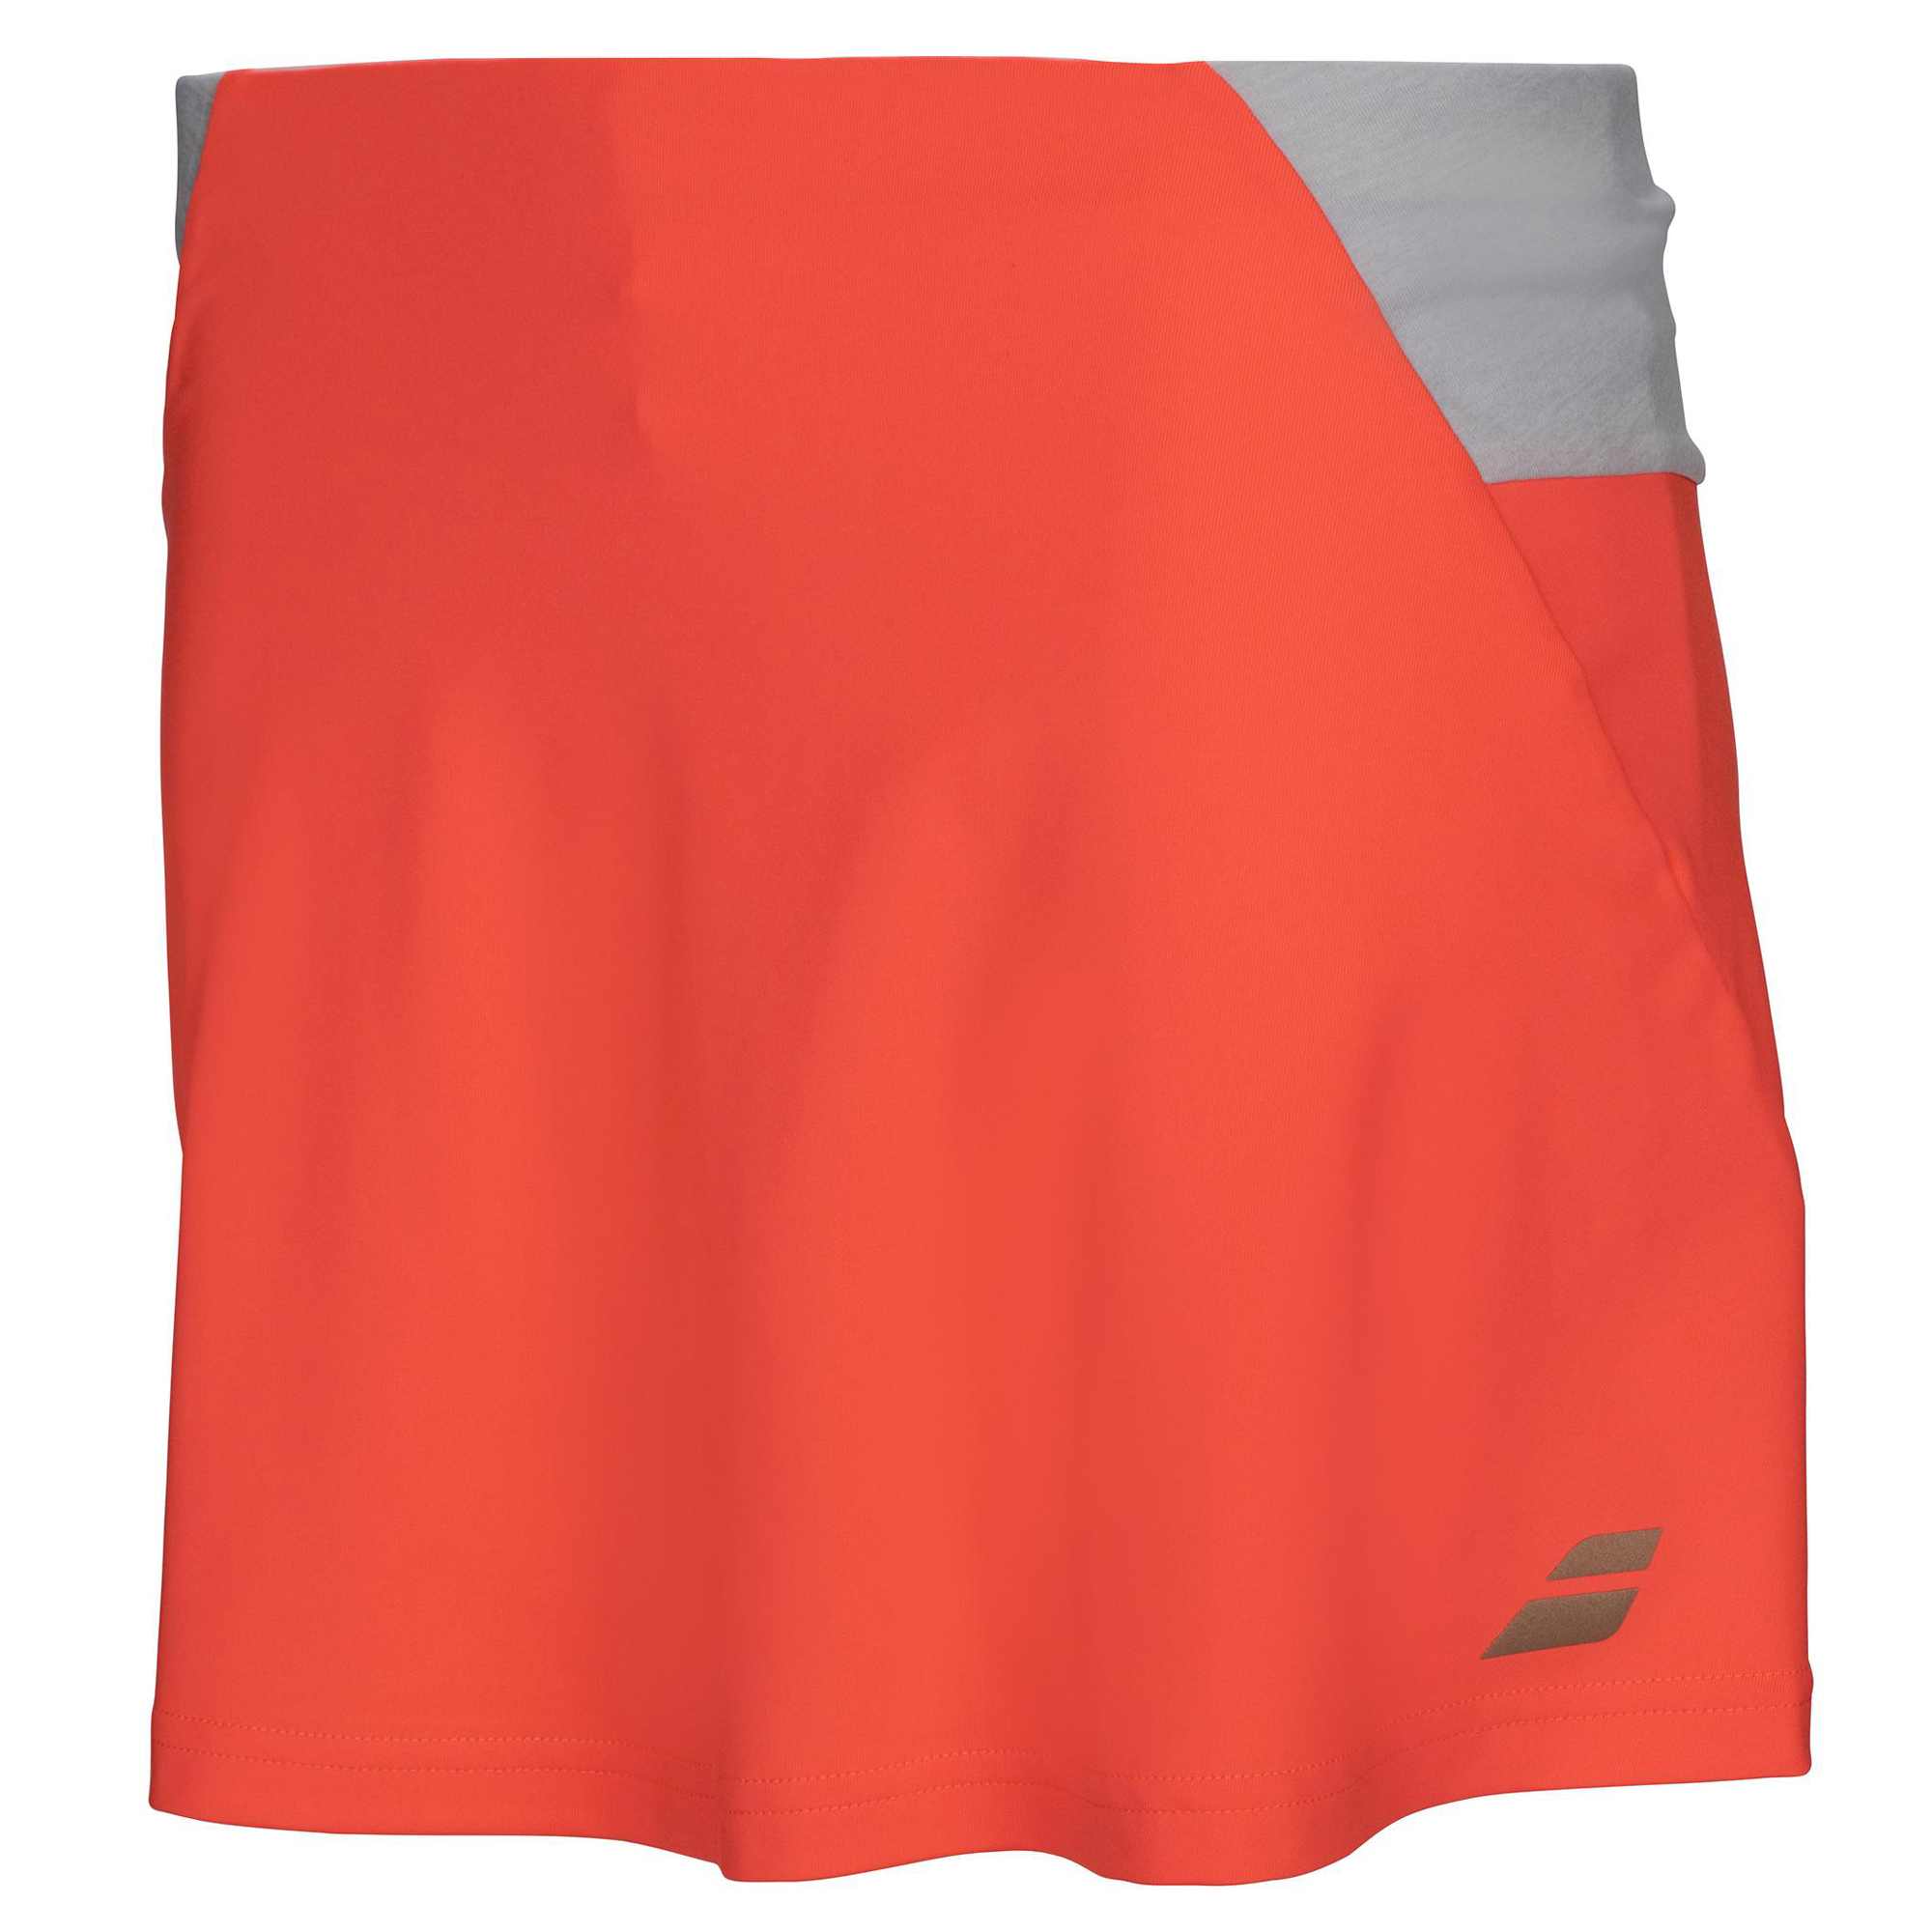 Babolat Girls Perf Skirt Fluo Strike